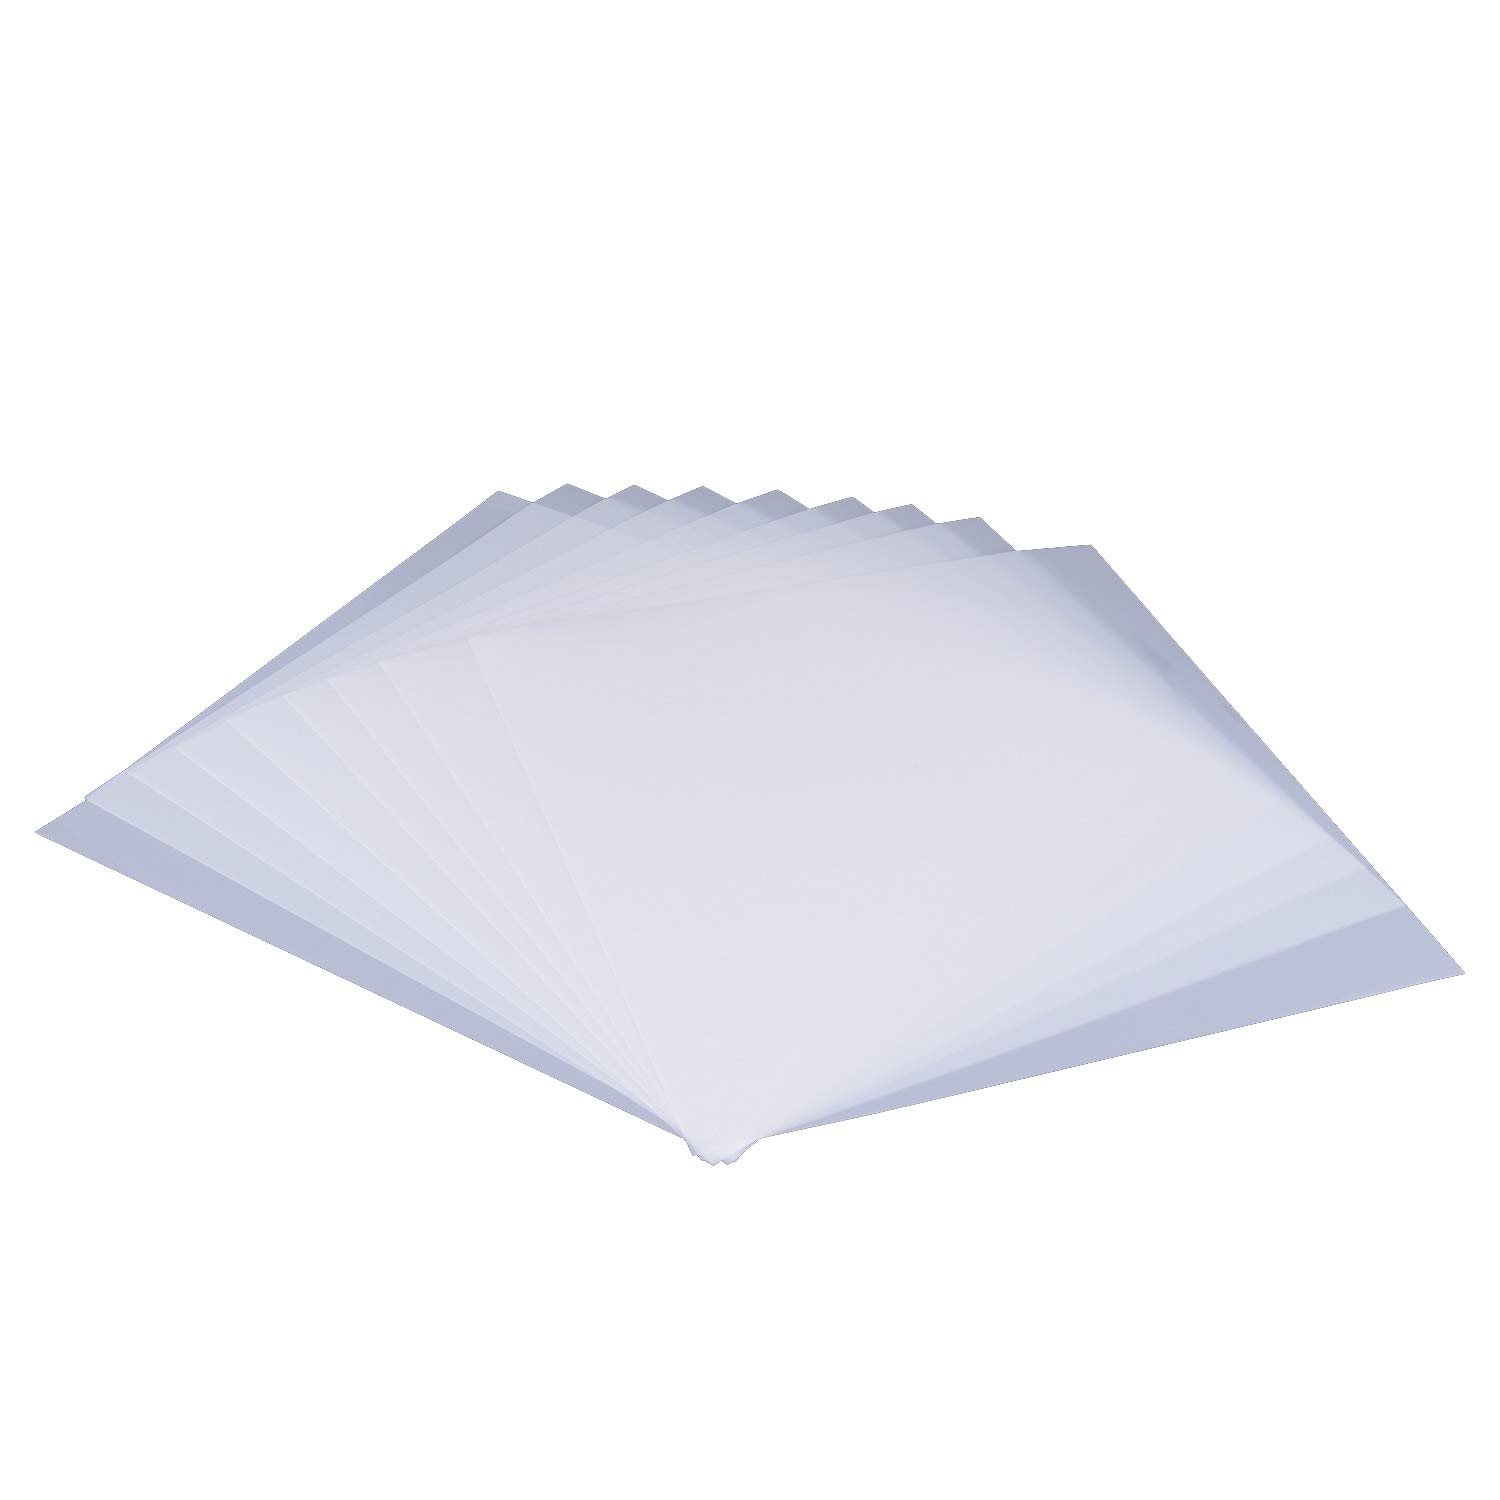 12in x 18in Bundle of EZ International Quilting by Wrights Blank Plastic Template Sheets 5 Sheets